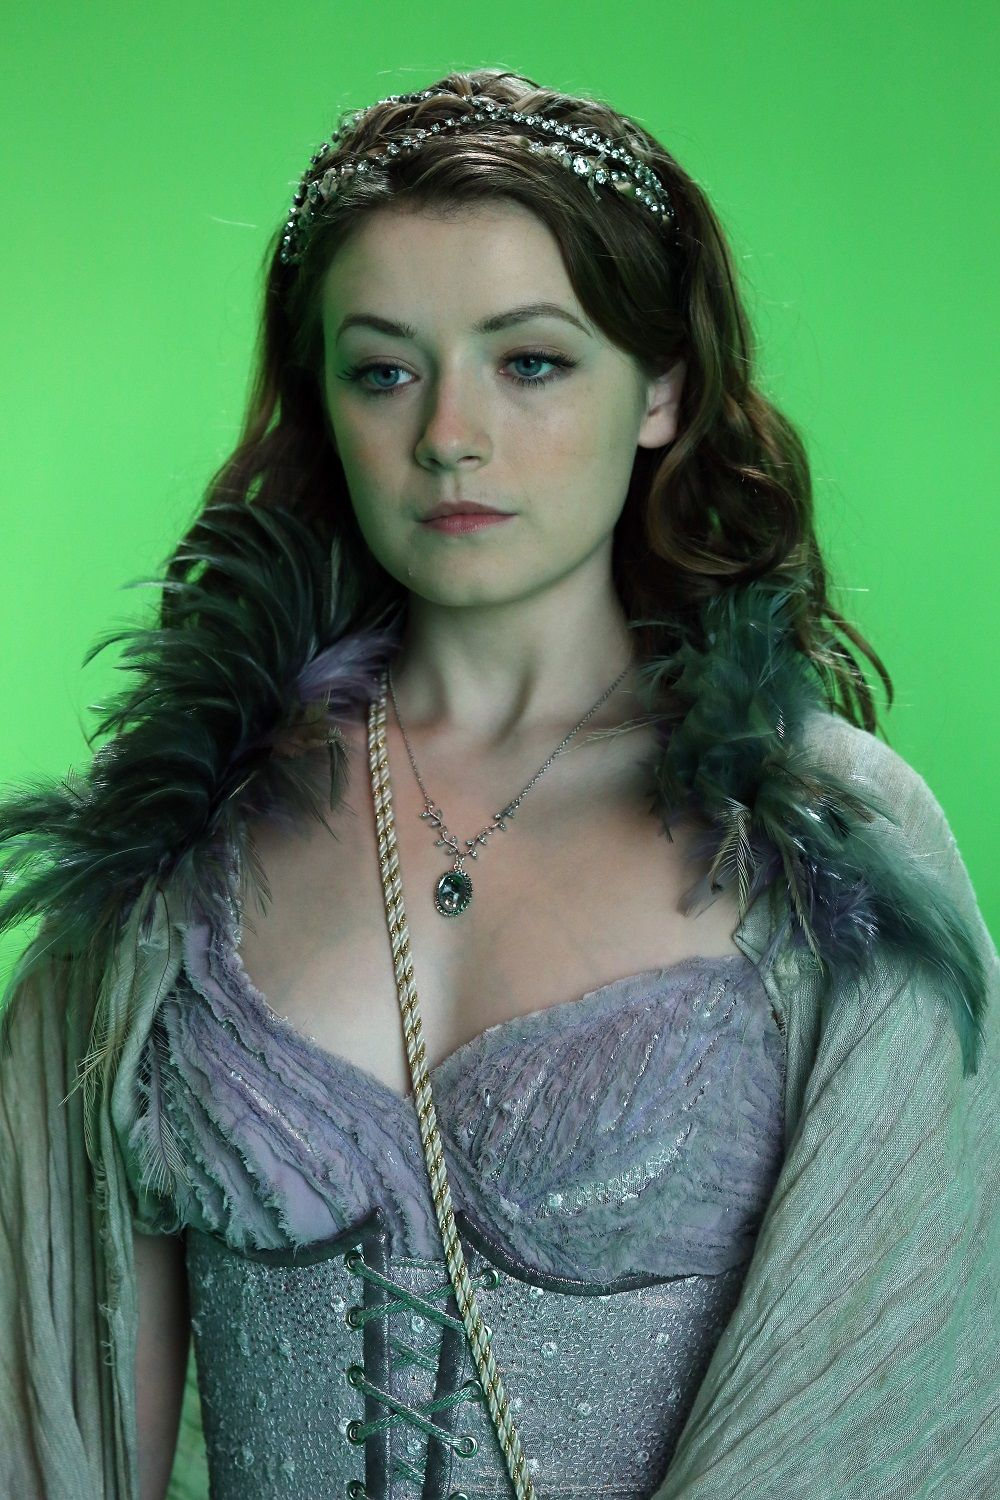 2019 Sarah Bolger nude (64 foto and video), Pussy, Fappening, Feet, legs 2006